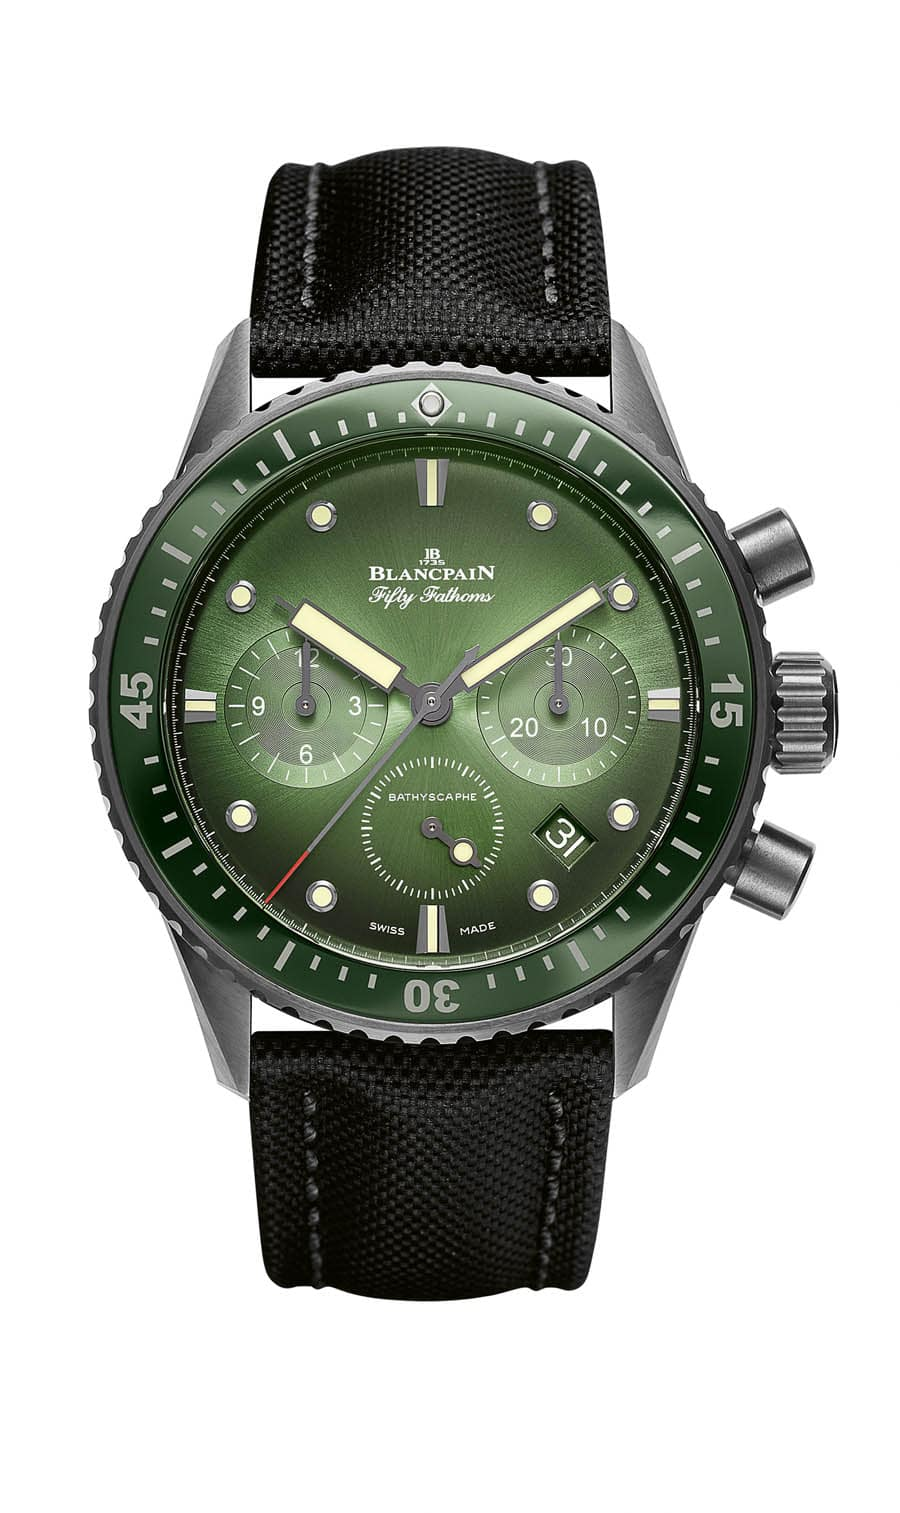 Blancpain Fifty Fathoms Bathyscaphe Chronograph Flyback Green Dial